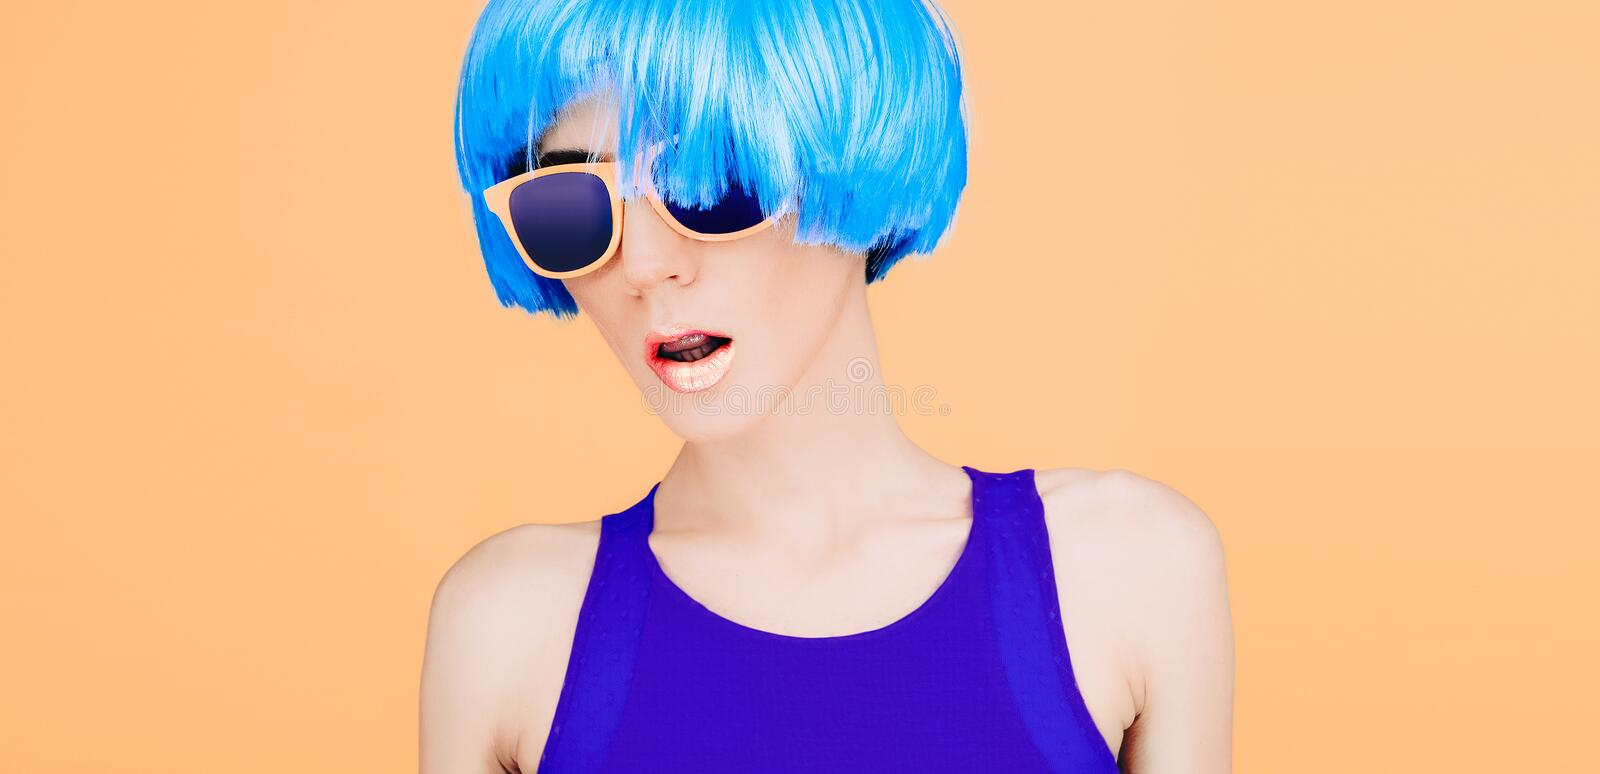 Fantastic fashion lady in blue wig and glasses stock photography